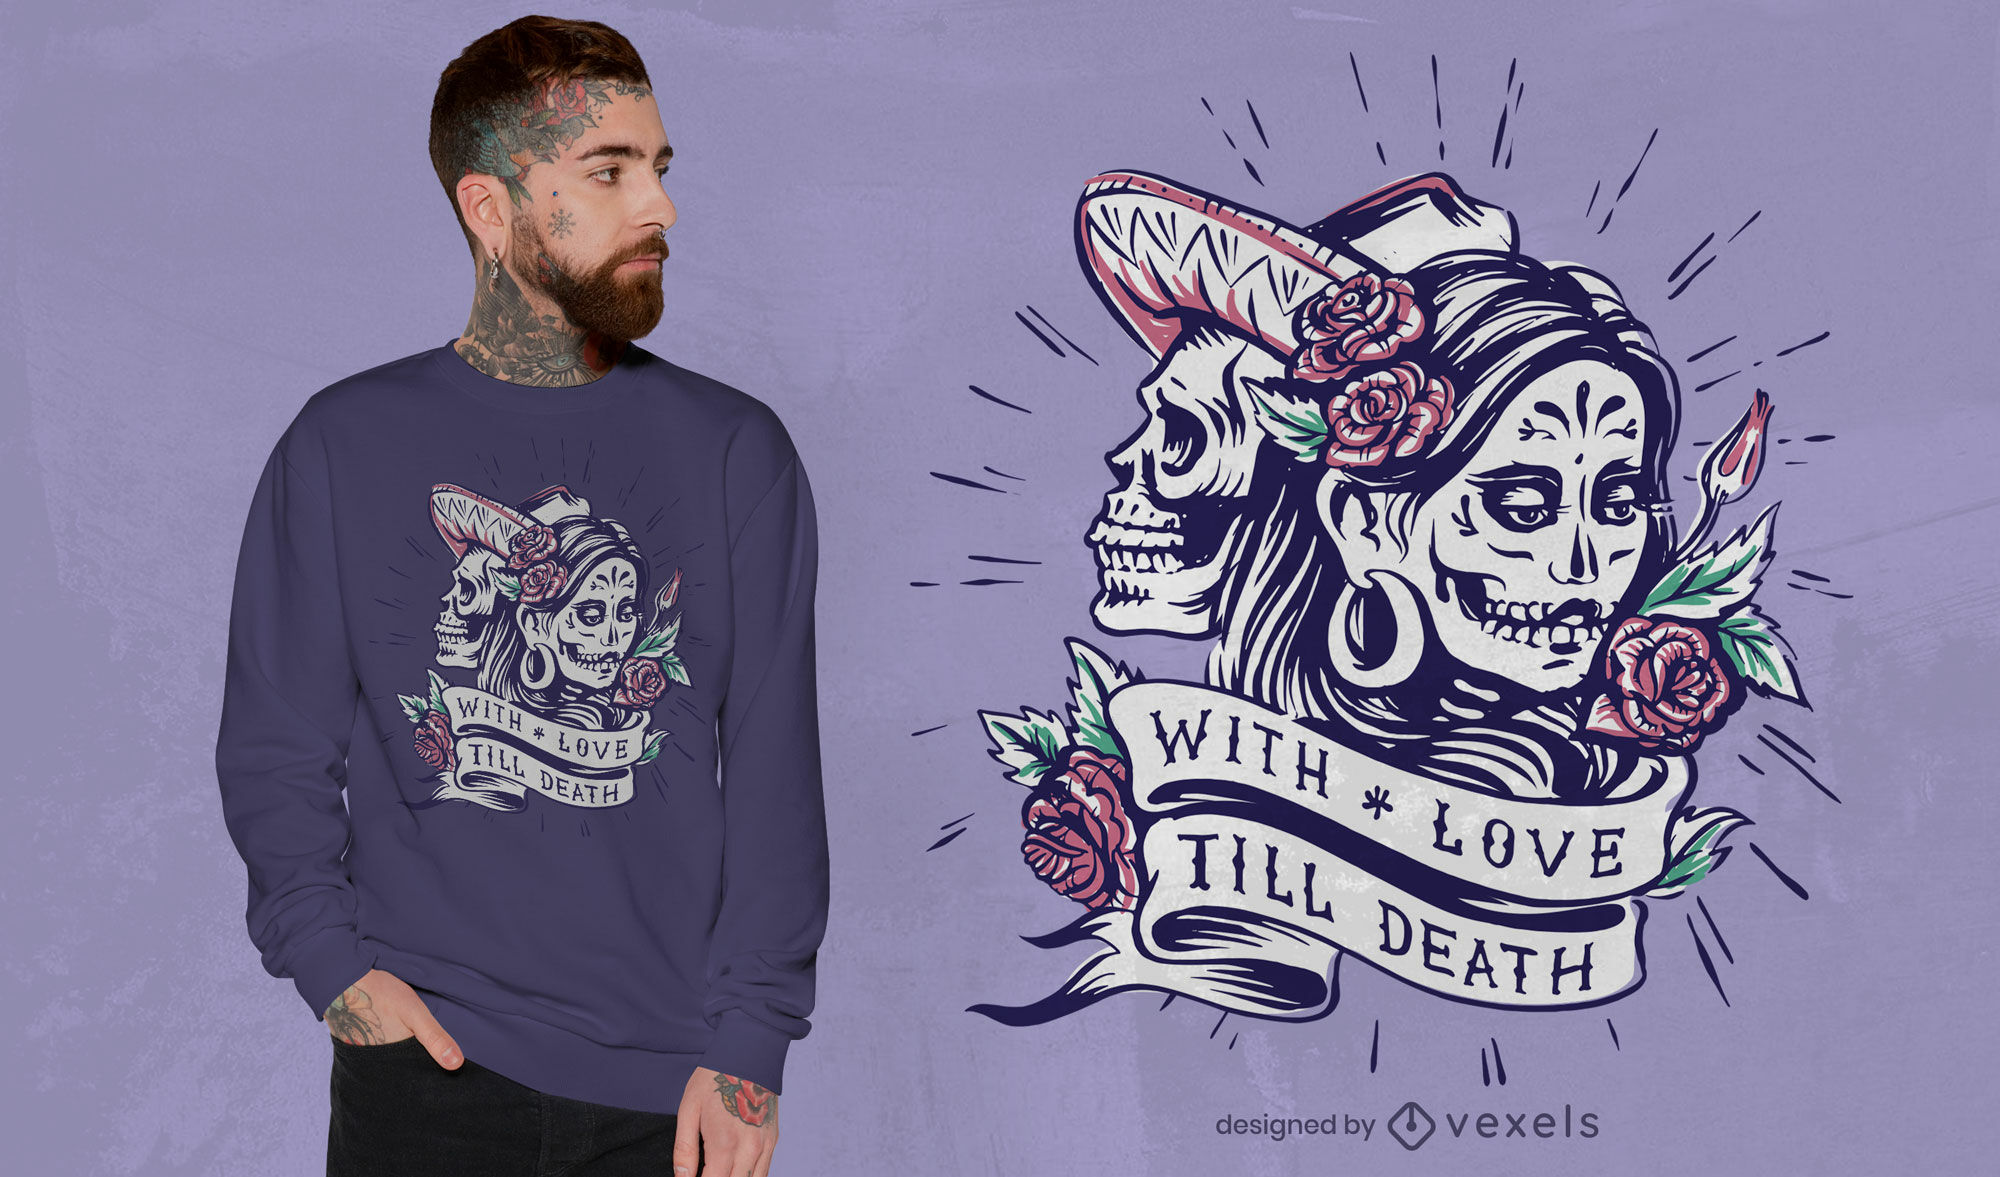 Day of the dead love t-shirt design